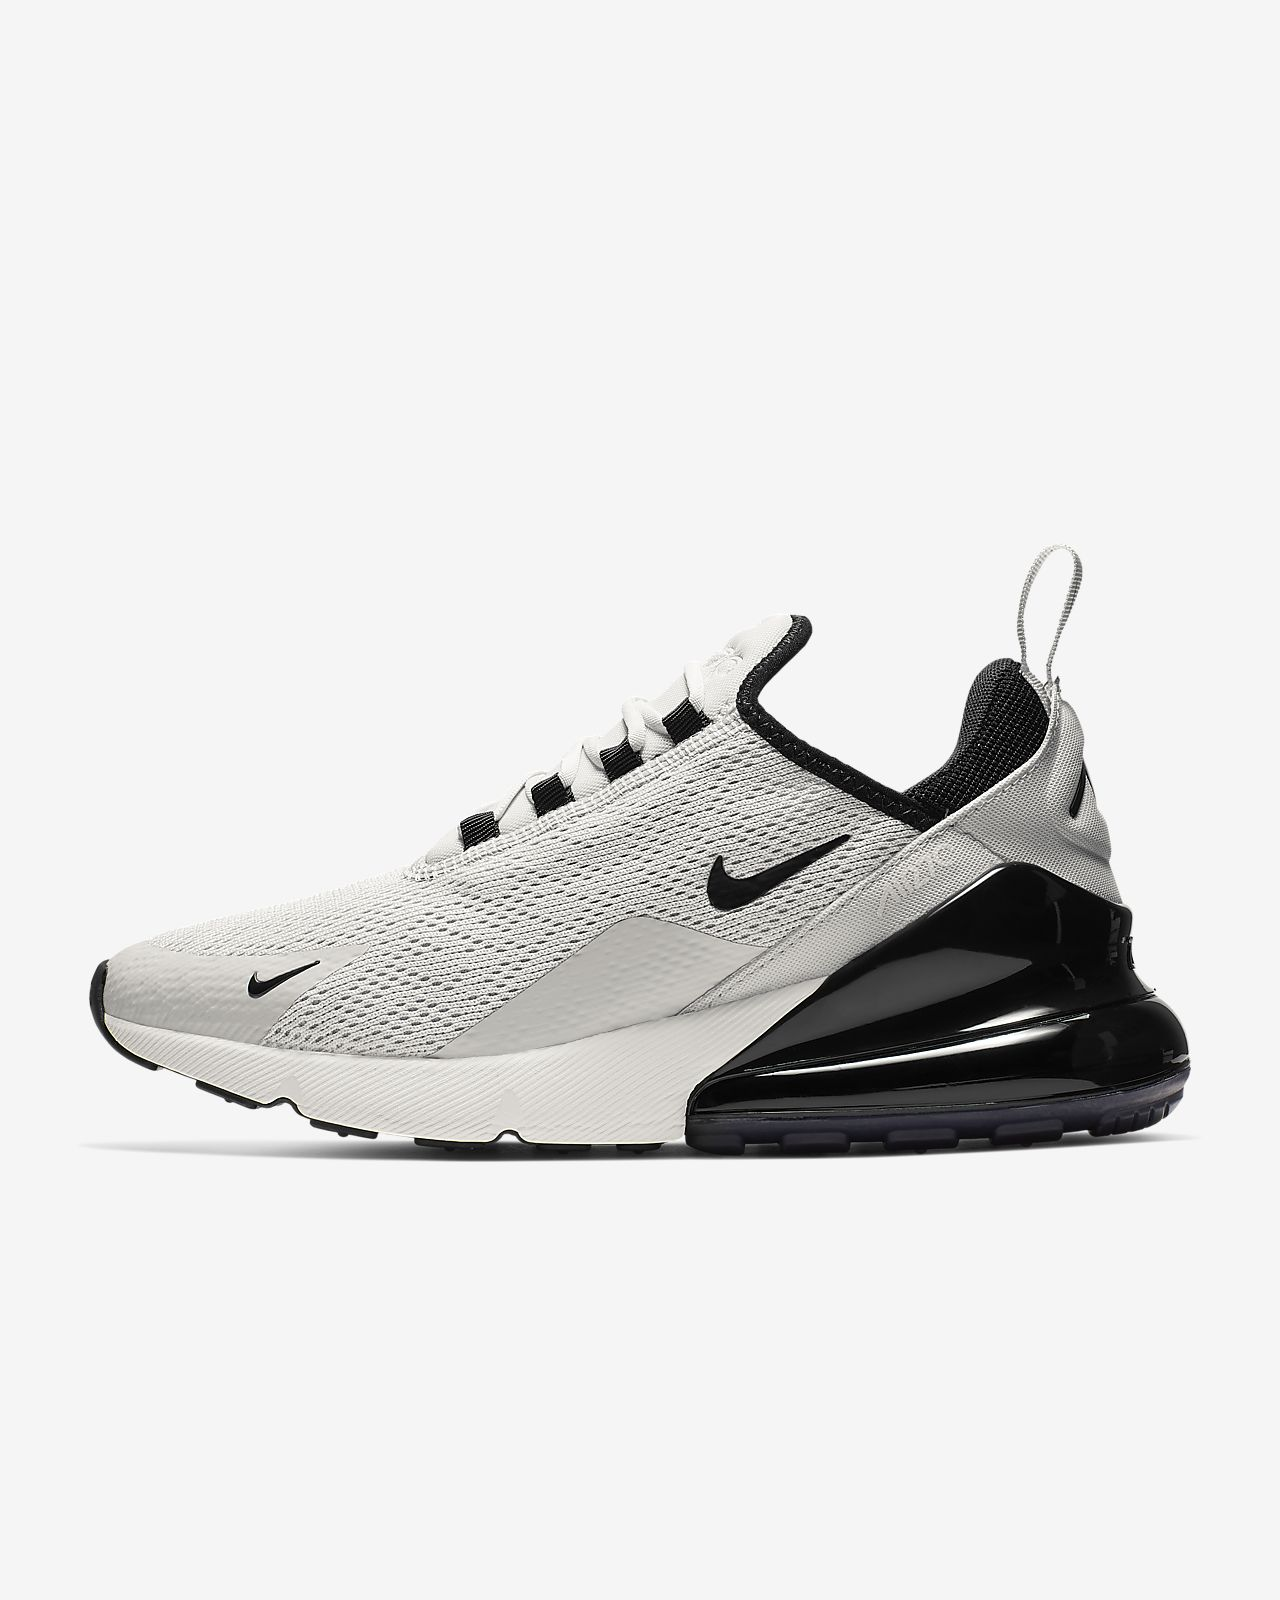 in stock 2ee2f c50aa Women s Shoe. Nike Air Max 270